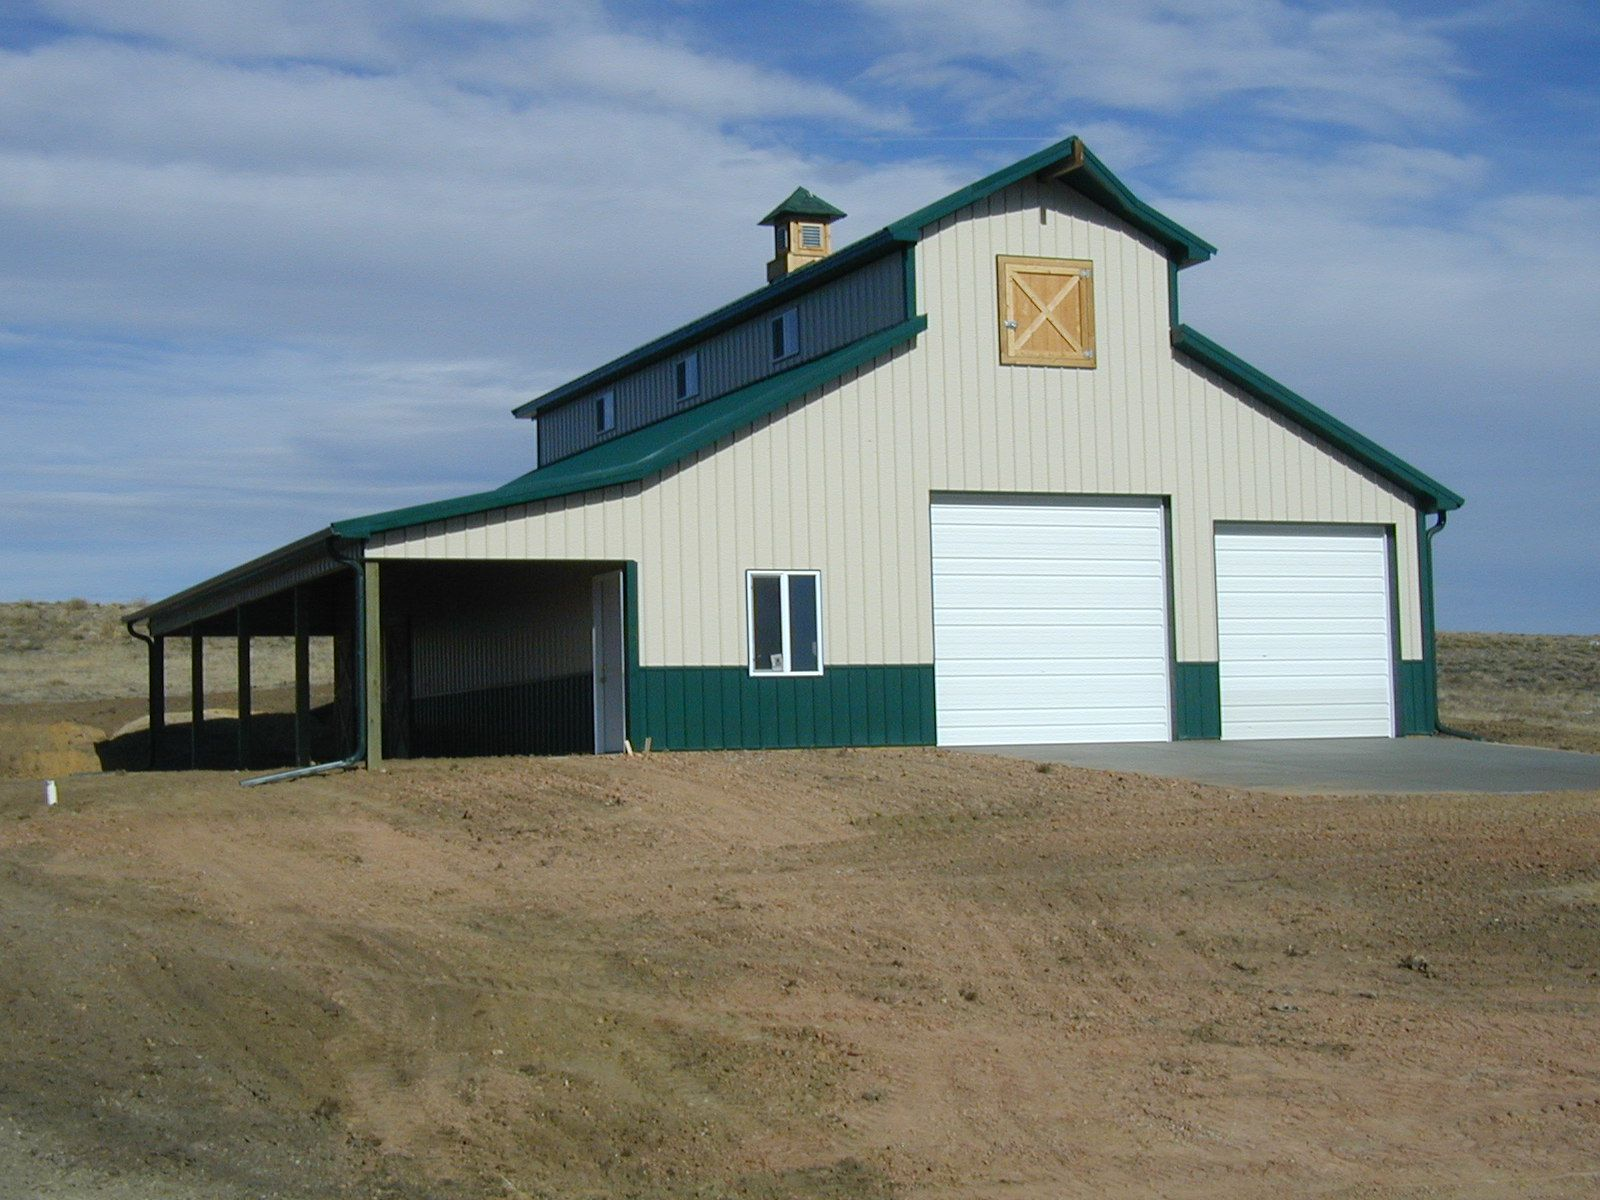 over 100 garage and barn plans in pdf jpg and dwg on a dvd g382 over 100 garage and barn plans in pdf jpg and dwg on a dvd g382 garage plans sdsplans blueprints and plans our farm pinterest barn plans